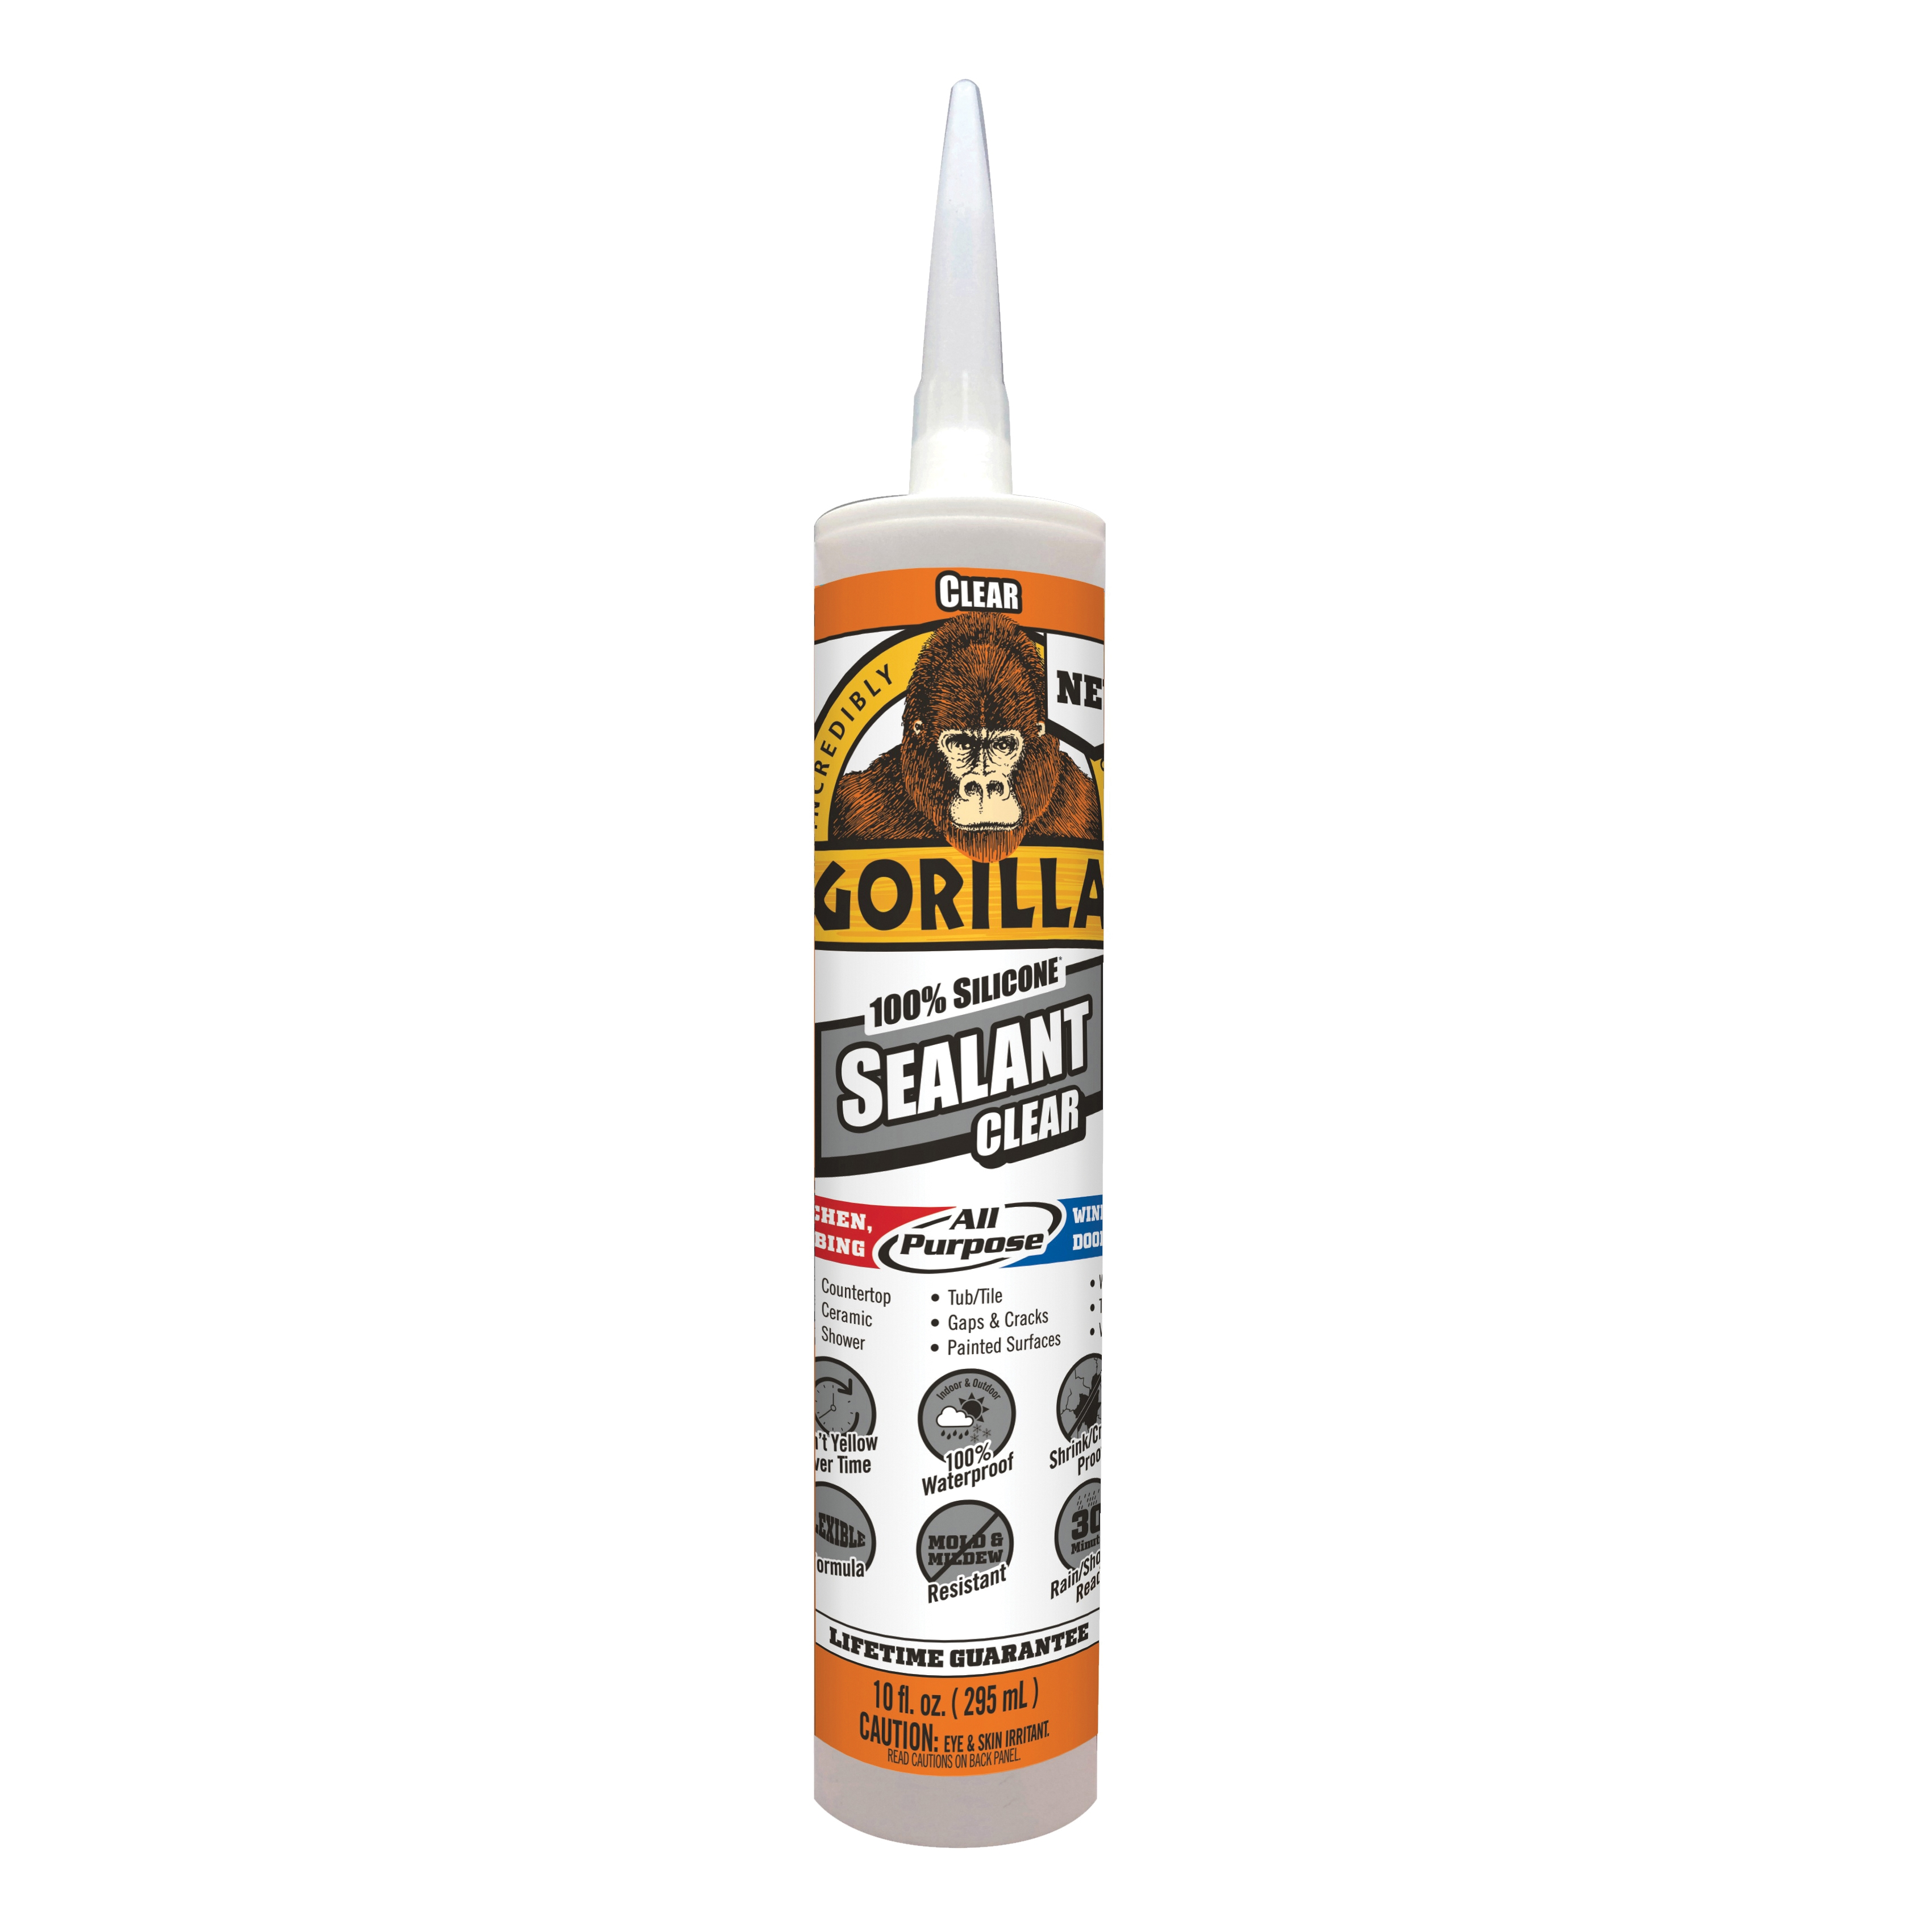 Picture of Gorilla 8050002 Silicone Sealant, Clear, 1 days Curing, -40 to 350 deg F, 10 oz Package, Cartridge